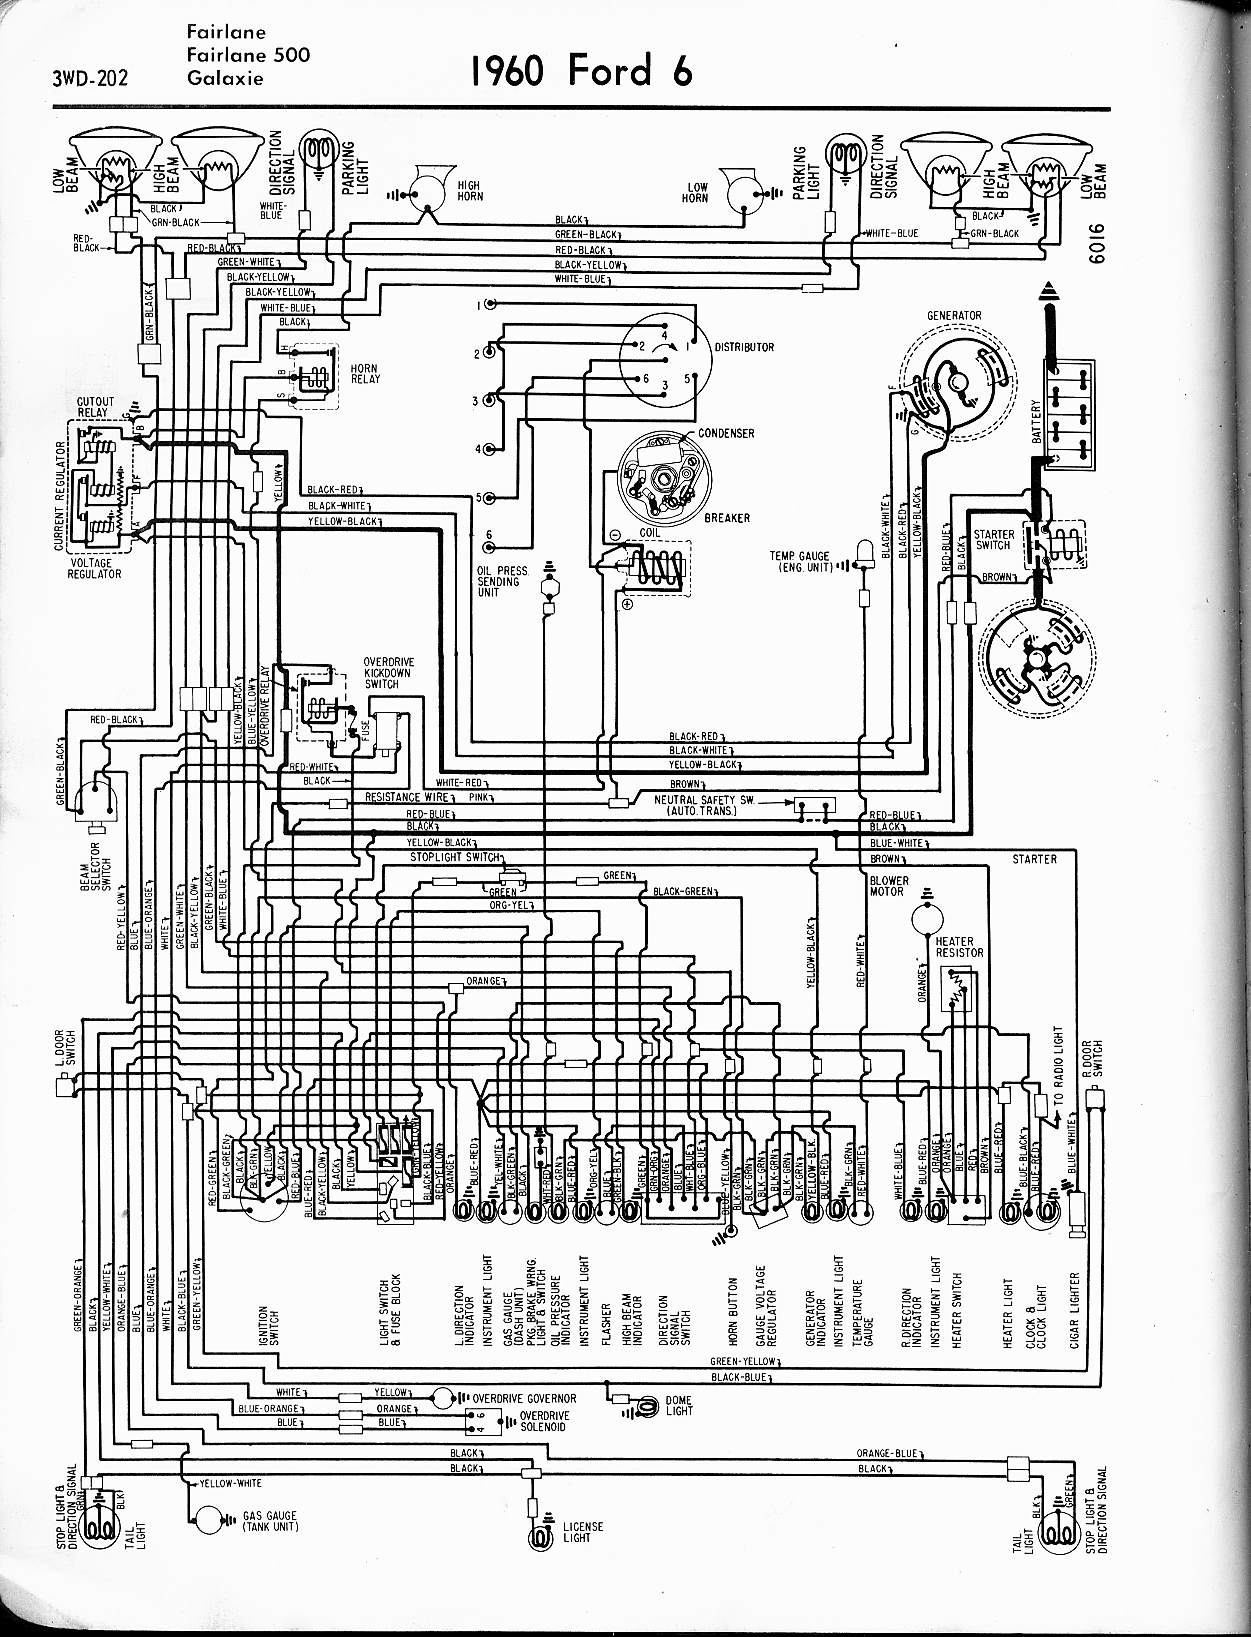 1957 Ford Fairlane Wiring Diagram Library 1968 Torino 500 Galaxie